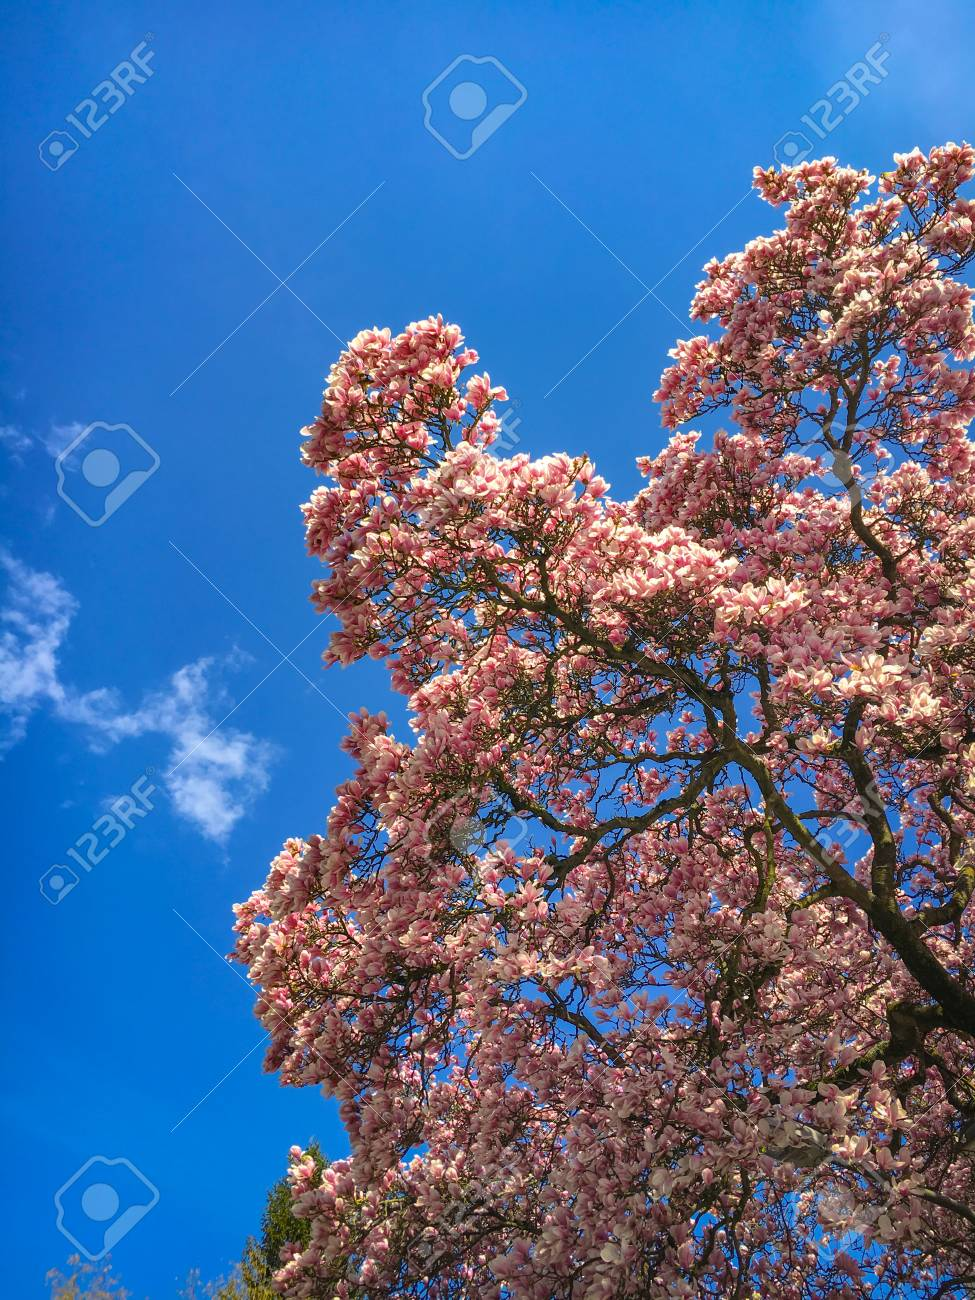 Beautiful Magnolia Tree In Full Bloom In Front Of A Blue Sky Stock